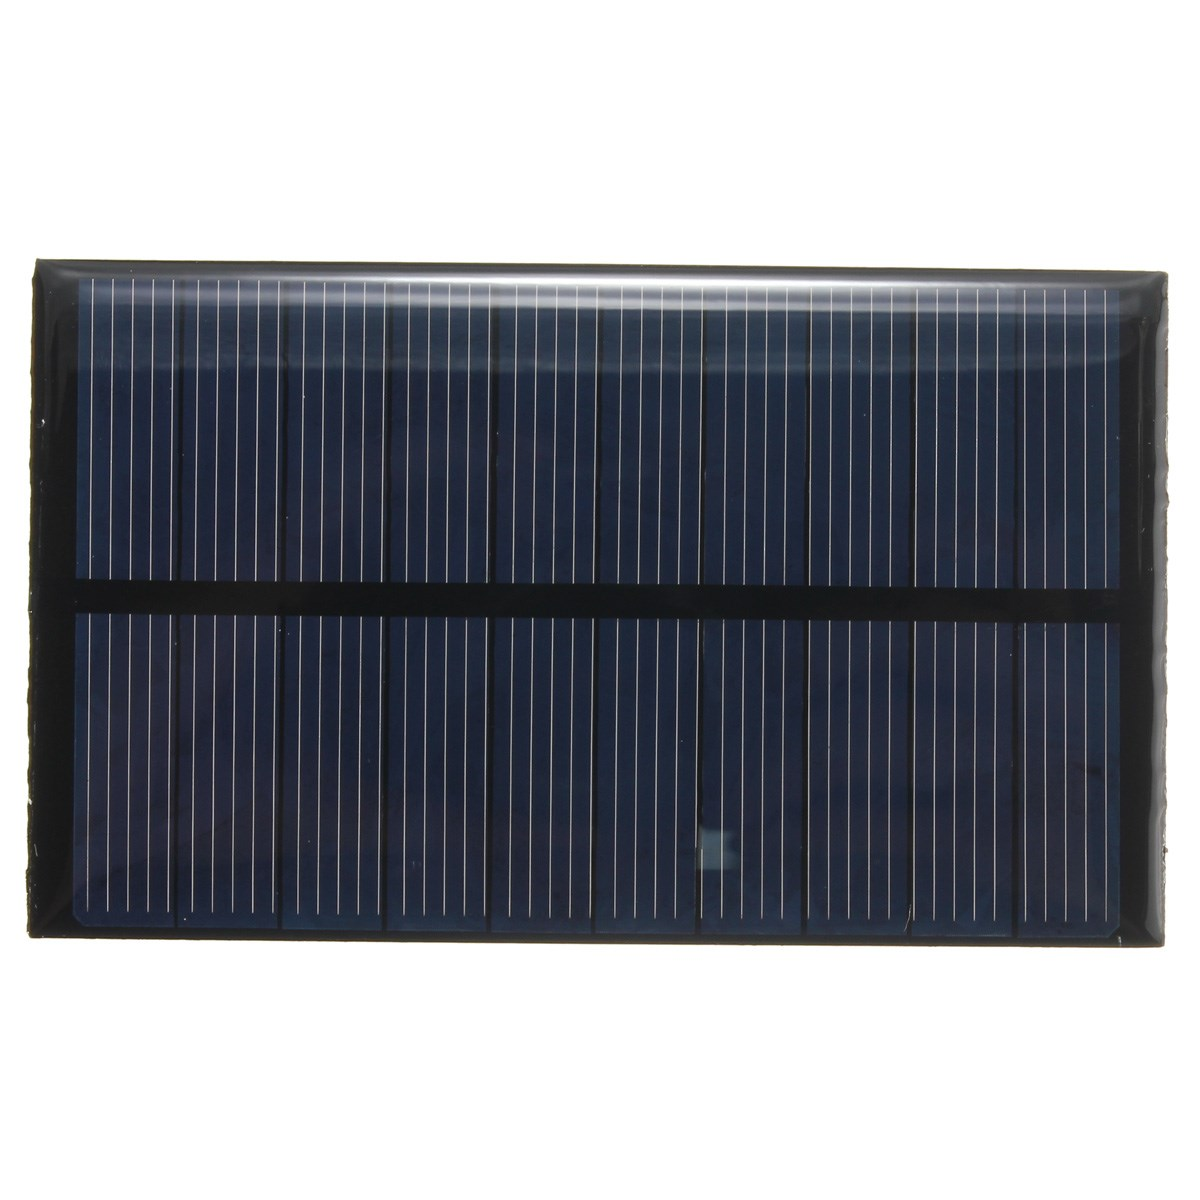 5V 1W 200mAh Polycrystalline Silicon Energy Universal Solar Panel Module System Solar Cells Battery Batteries for Phones Charger